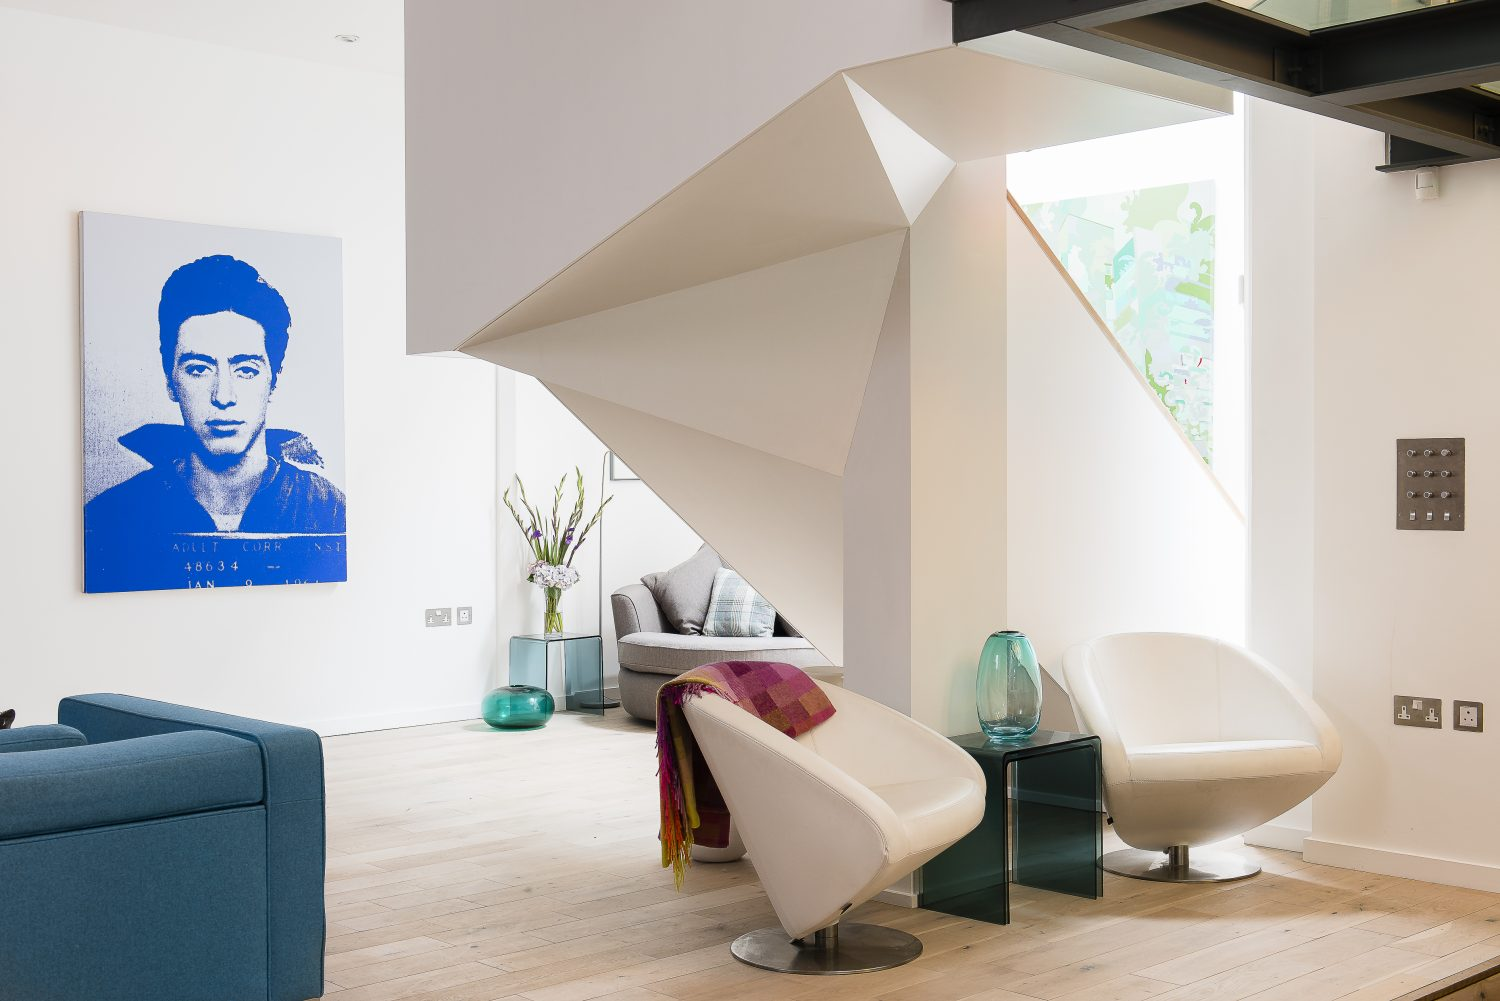 Chairs by Arketipo and white urns from The Conran Shop complement the geometric shapes of the staircase. The mug shot of Al Pacino is from the Pig Portrait series by Russell Young